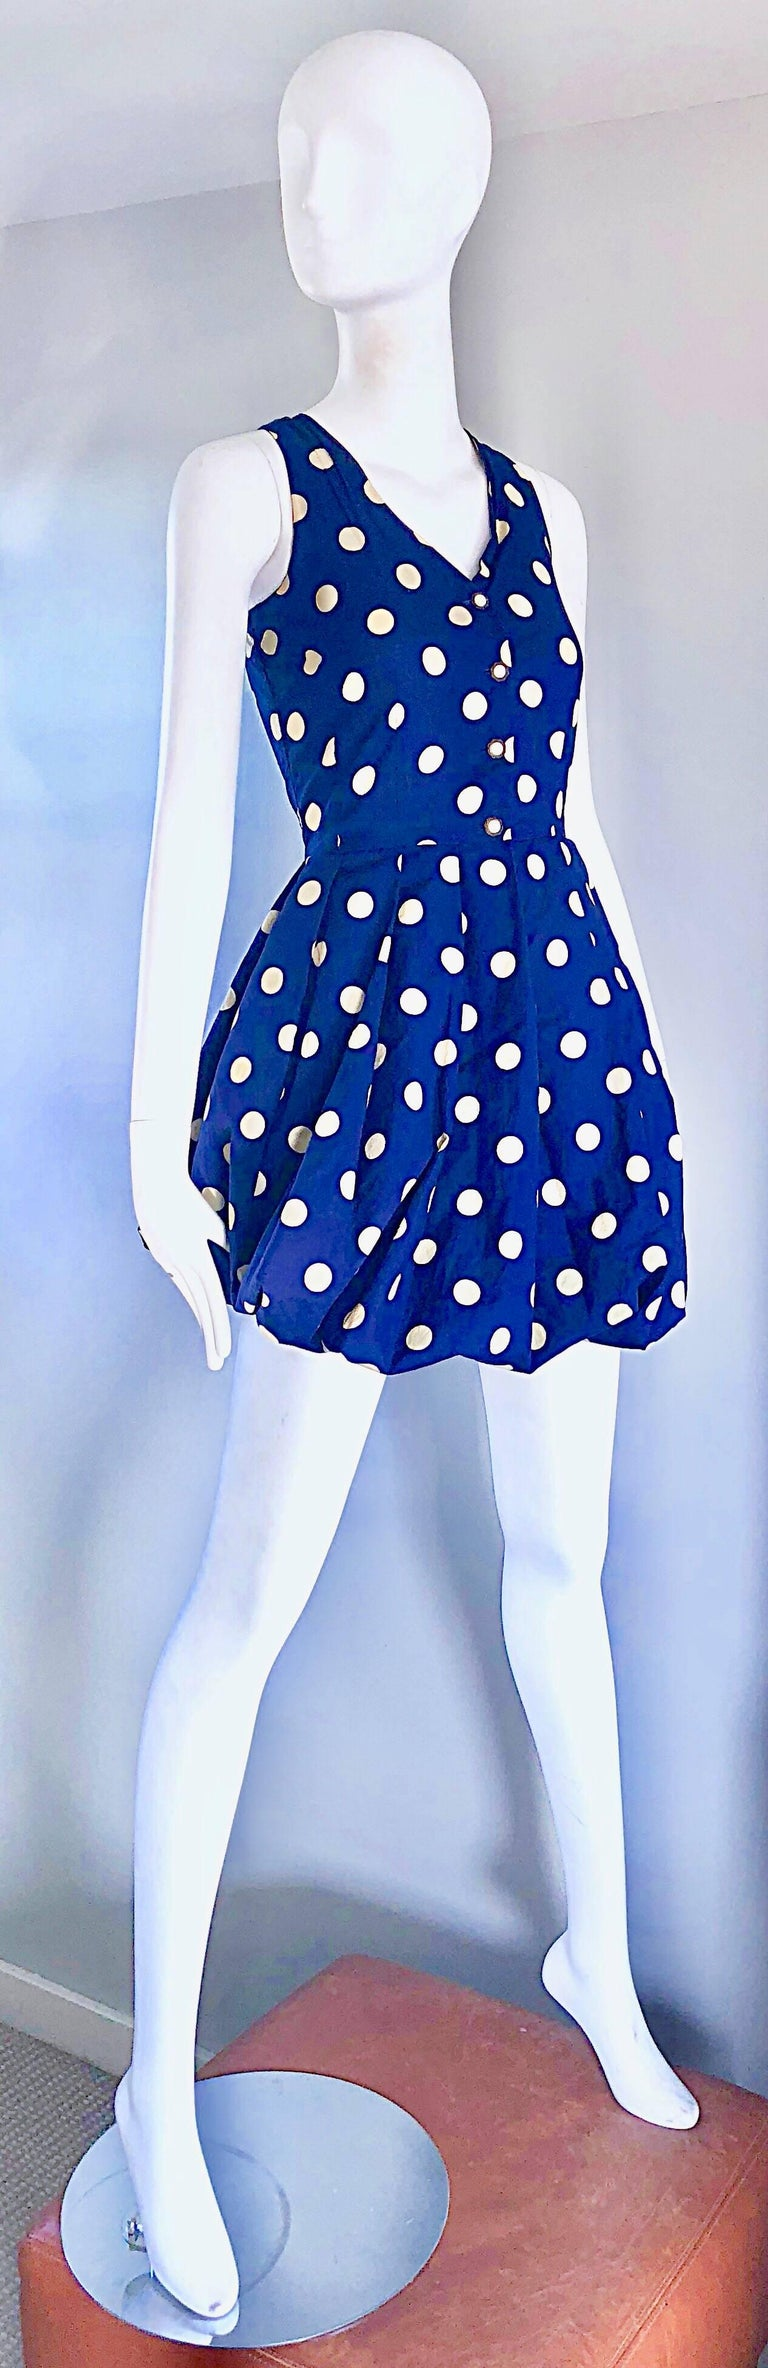 Women's 1990s Sergio Tegon Navy Blue and White Italian Cotton 90s Vintage Bubble Dress For Sale